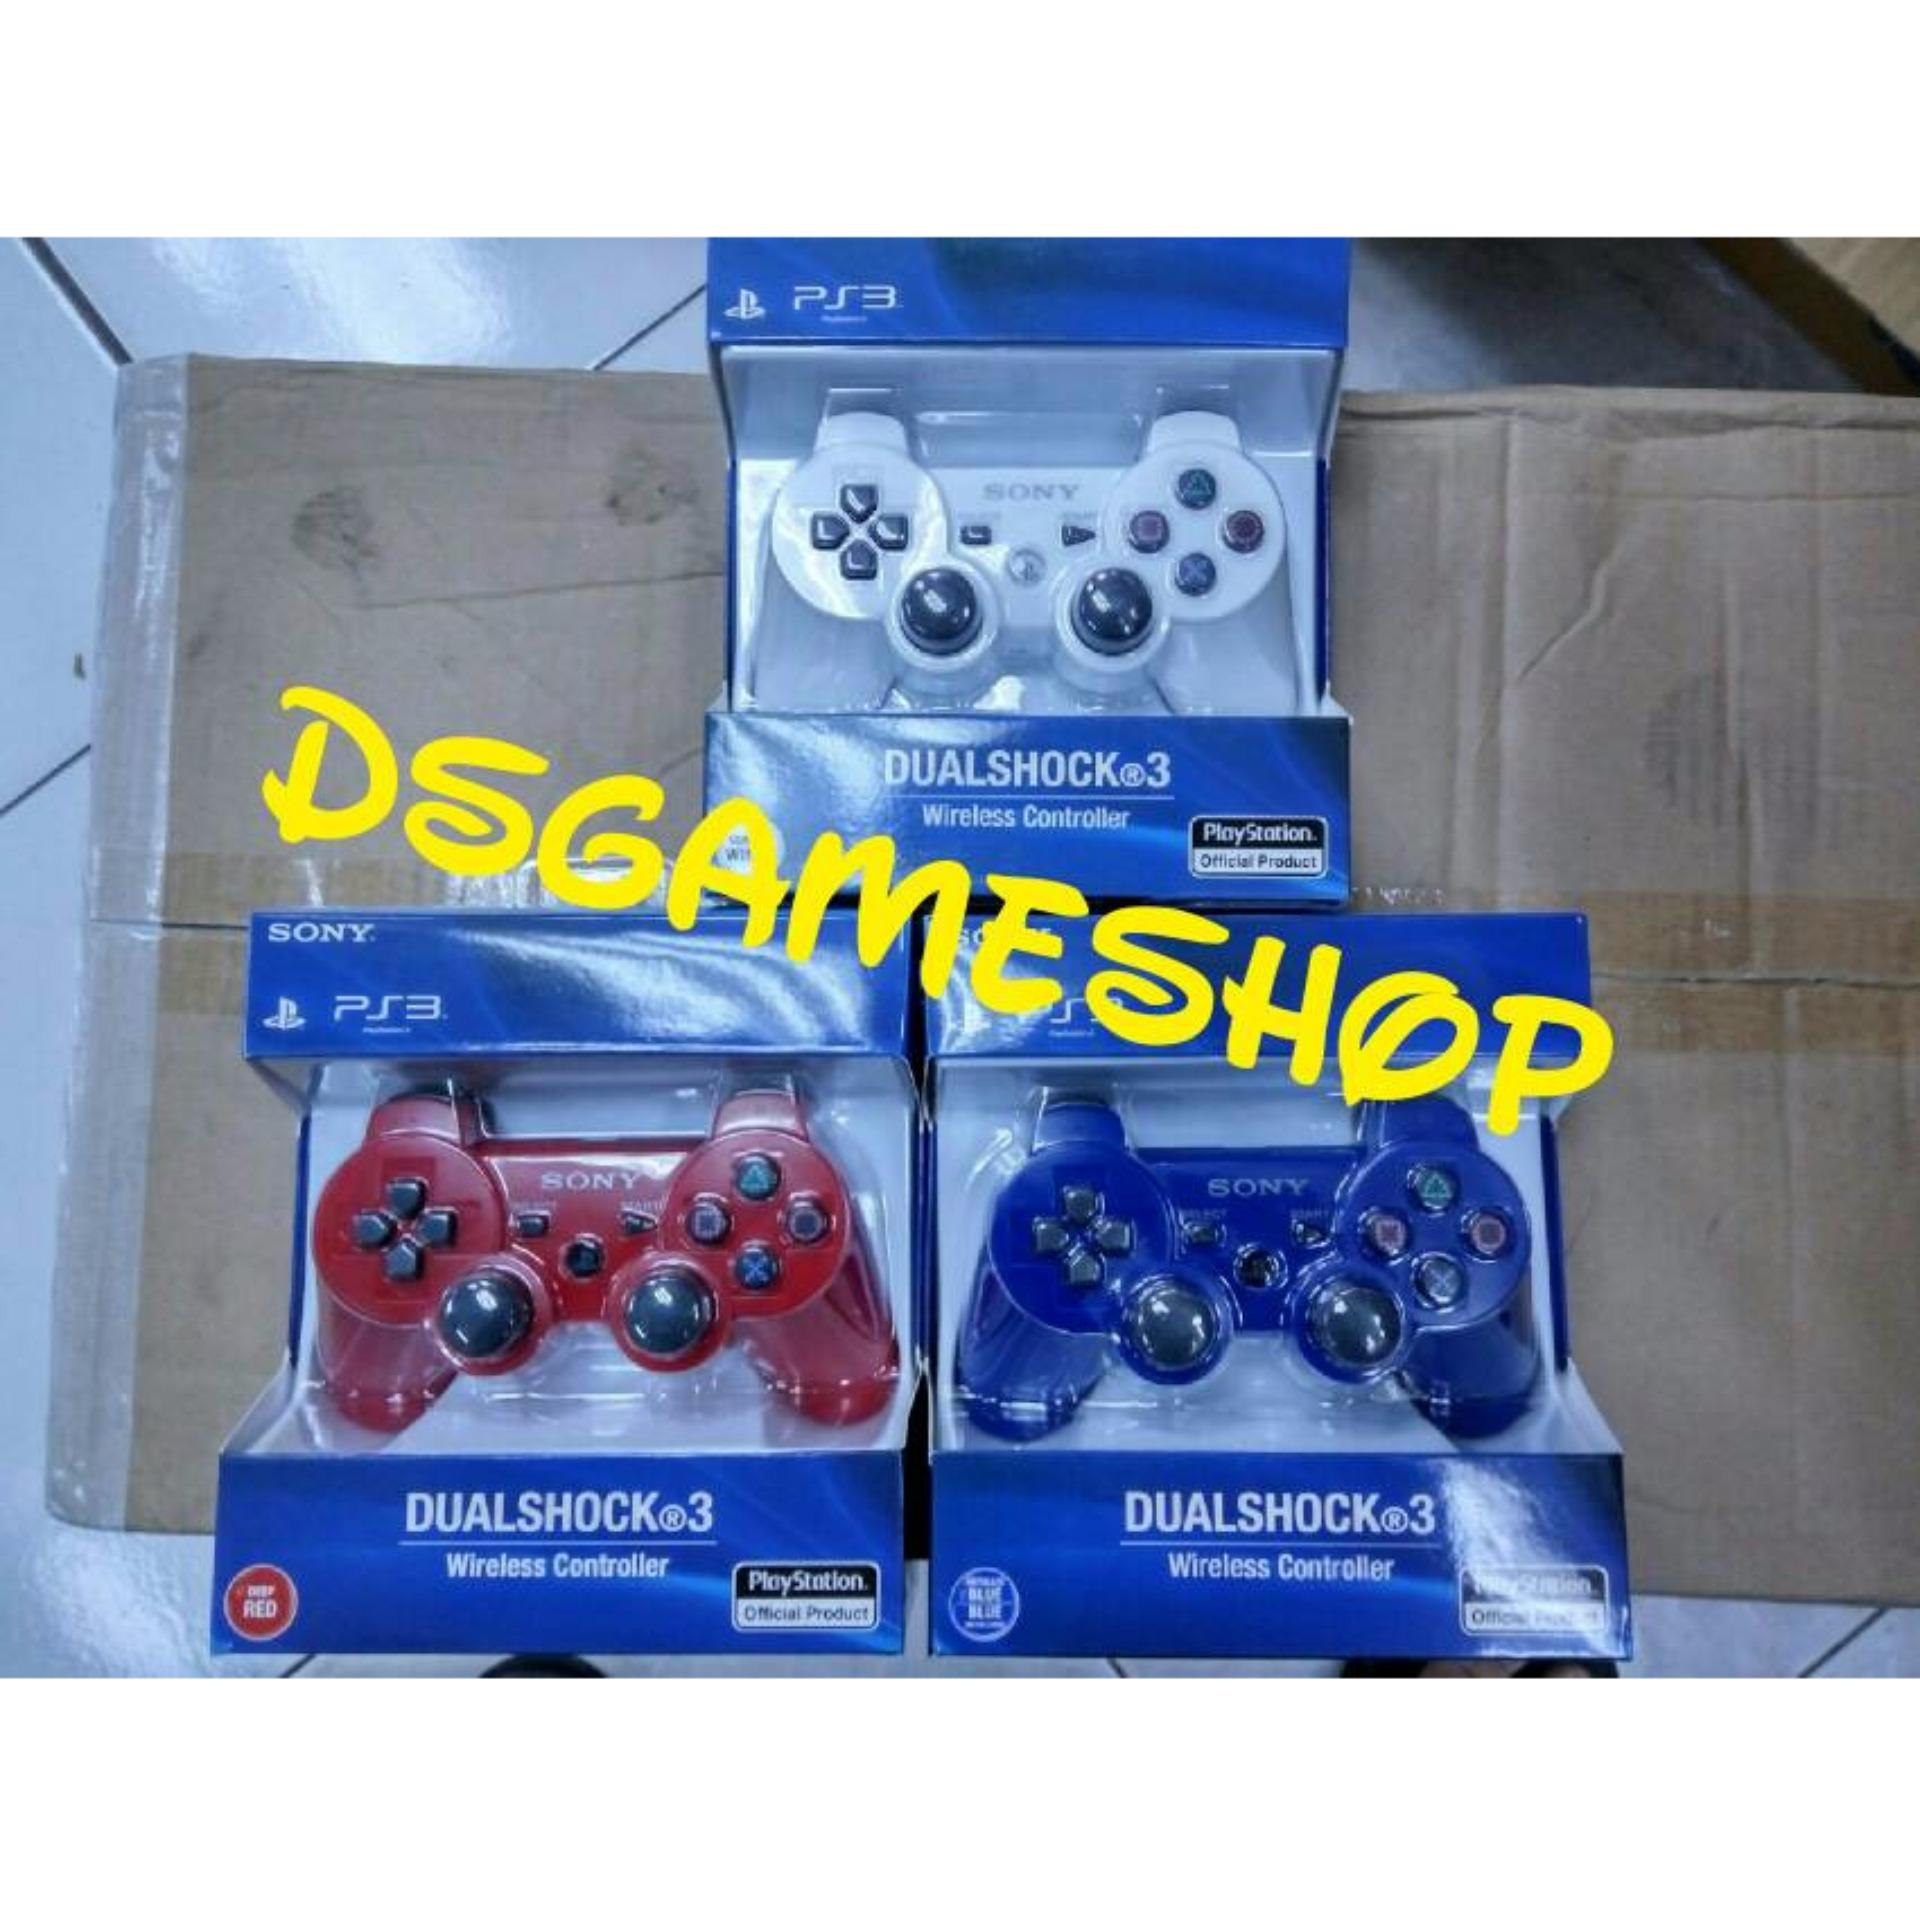 Stik Stick Ps3 Wireless Ori Pabrik Op Warna Biru Merah Putih Playstation 3 2nd Werles